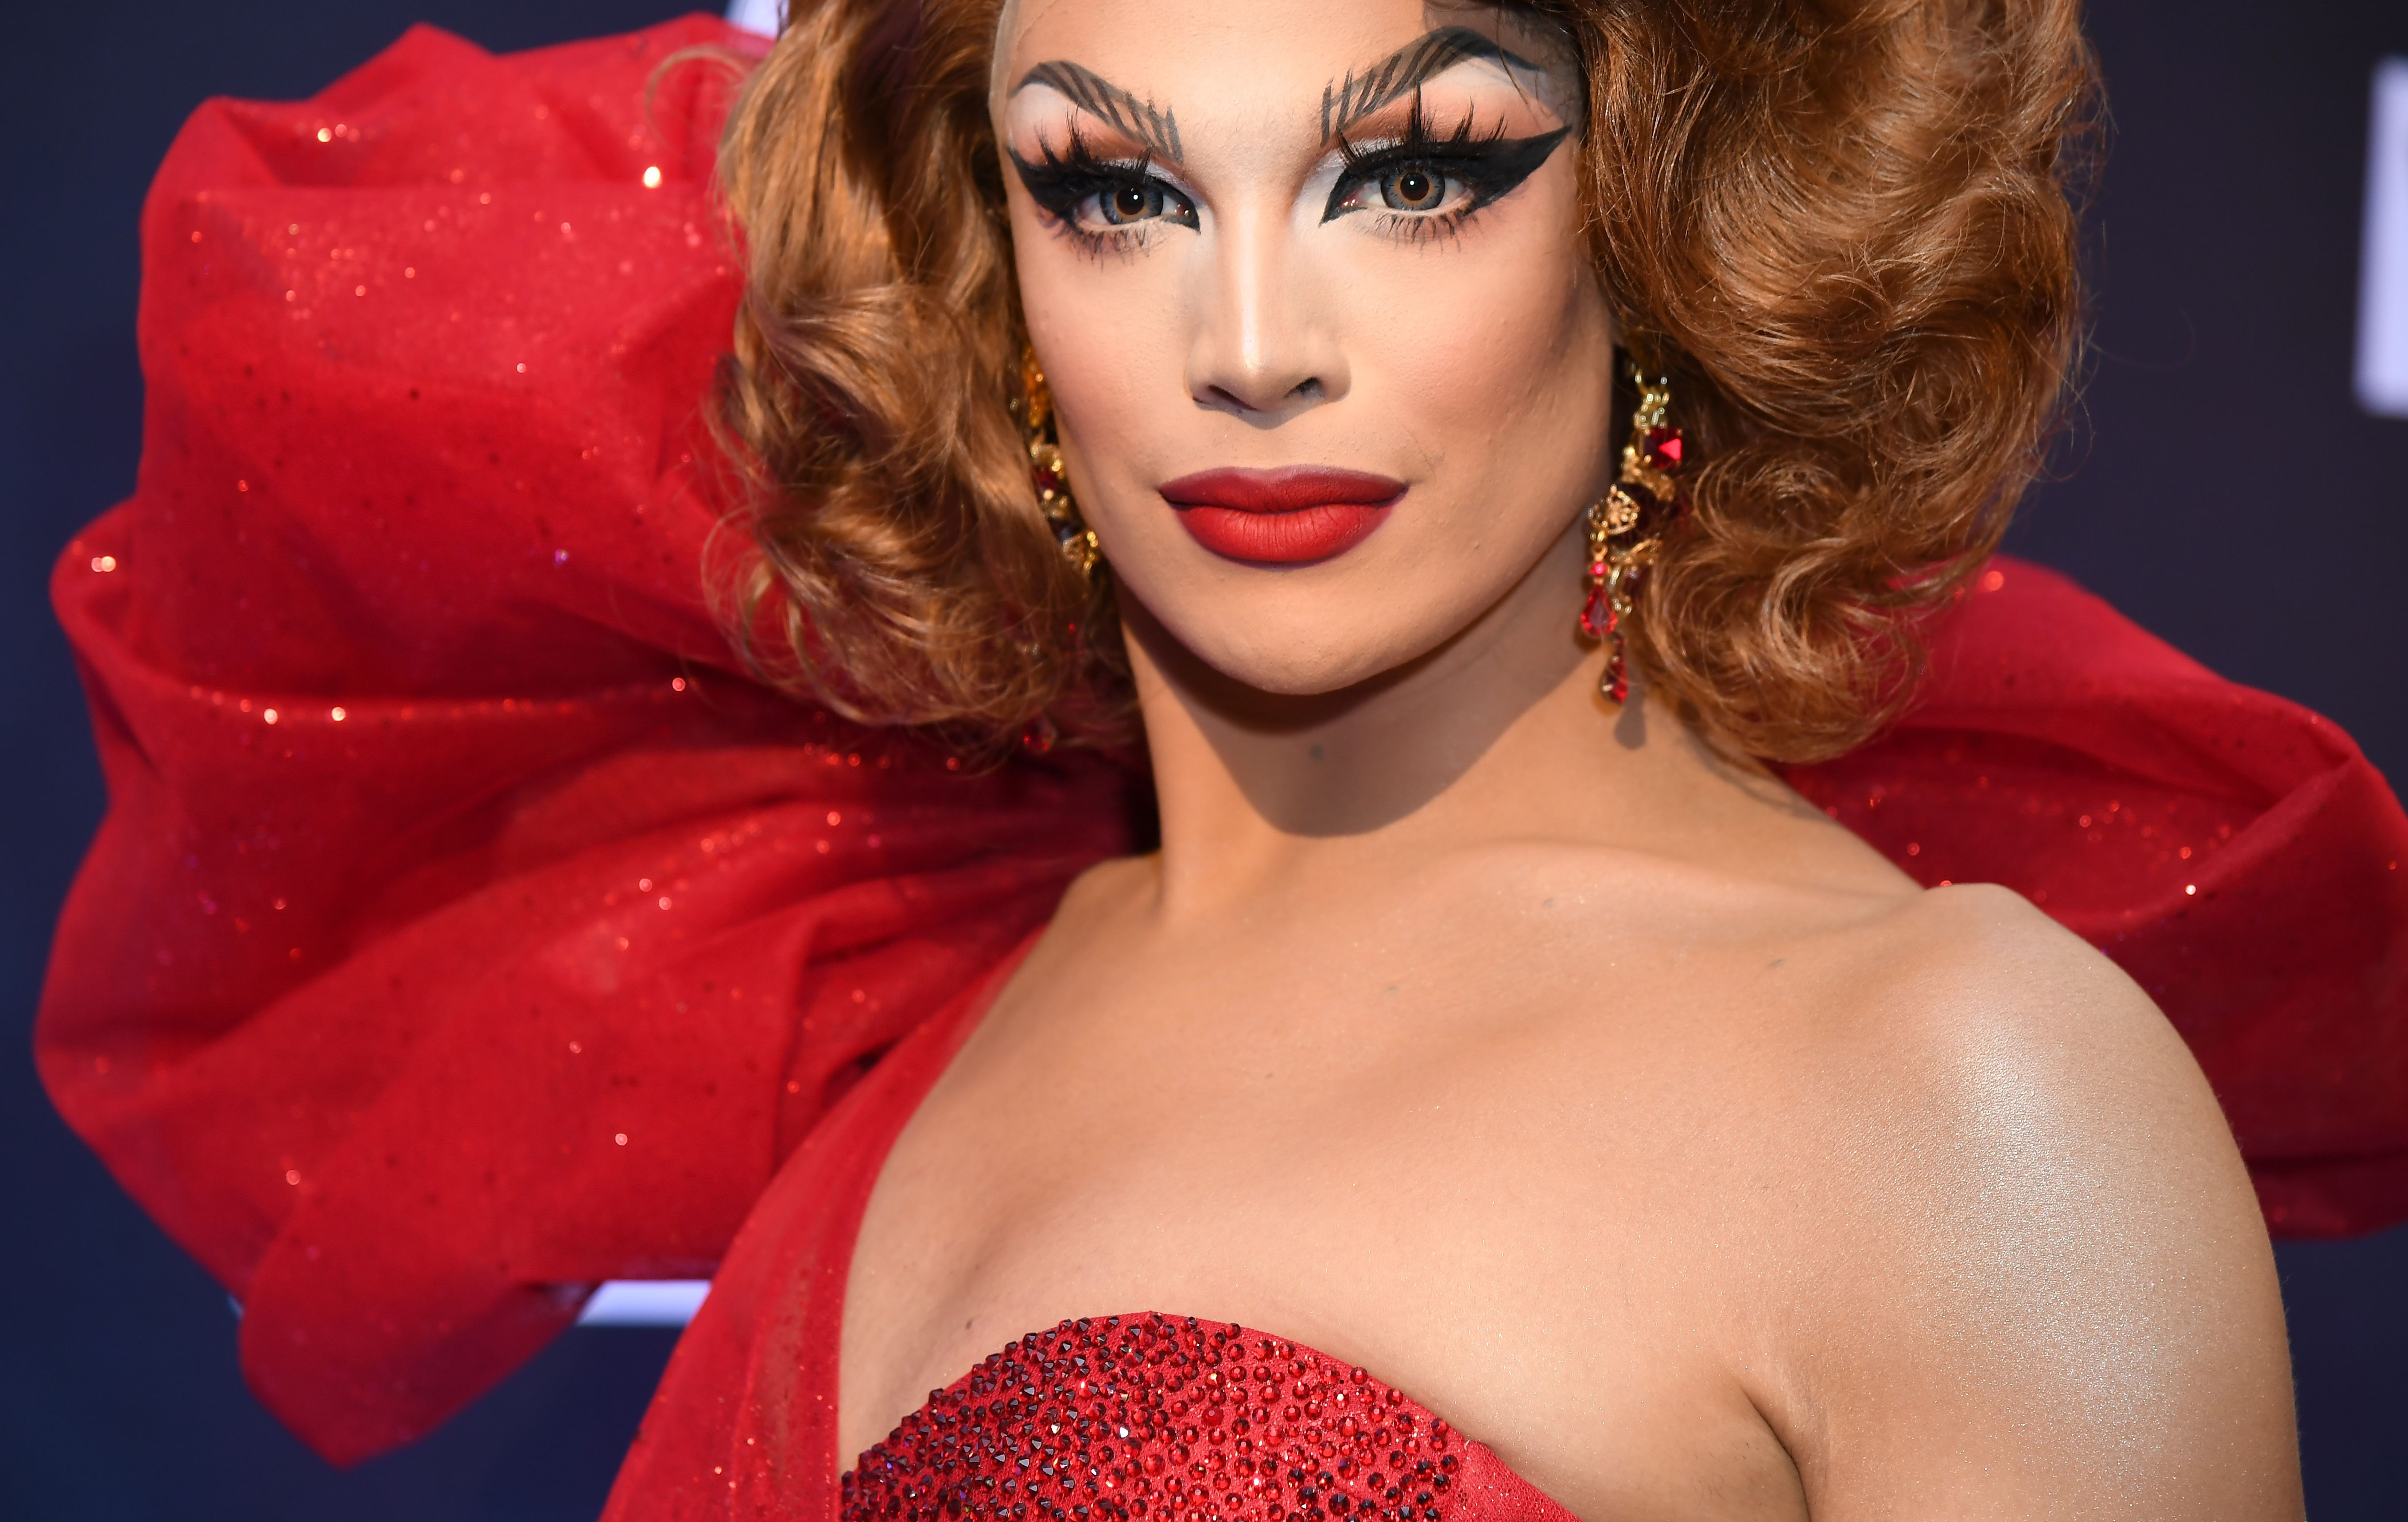 Drag Race's Valentina cast in Fox's live TV production of Rent